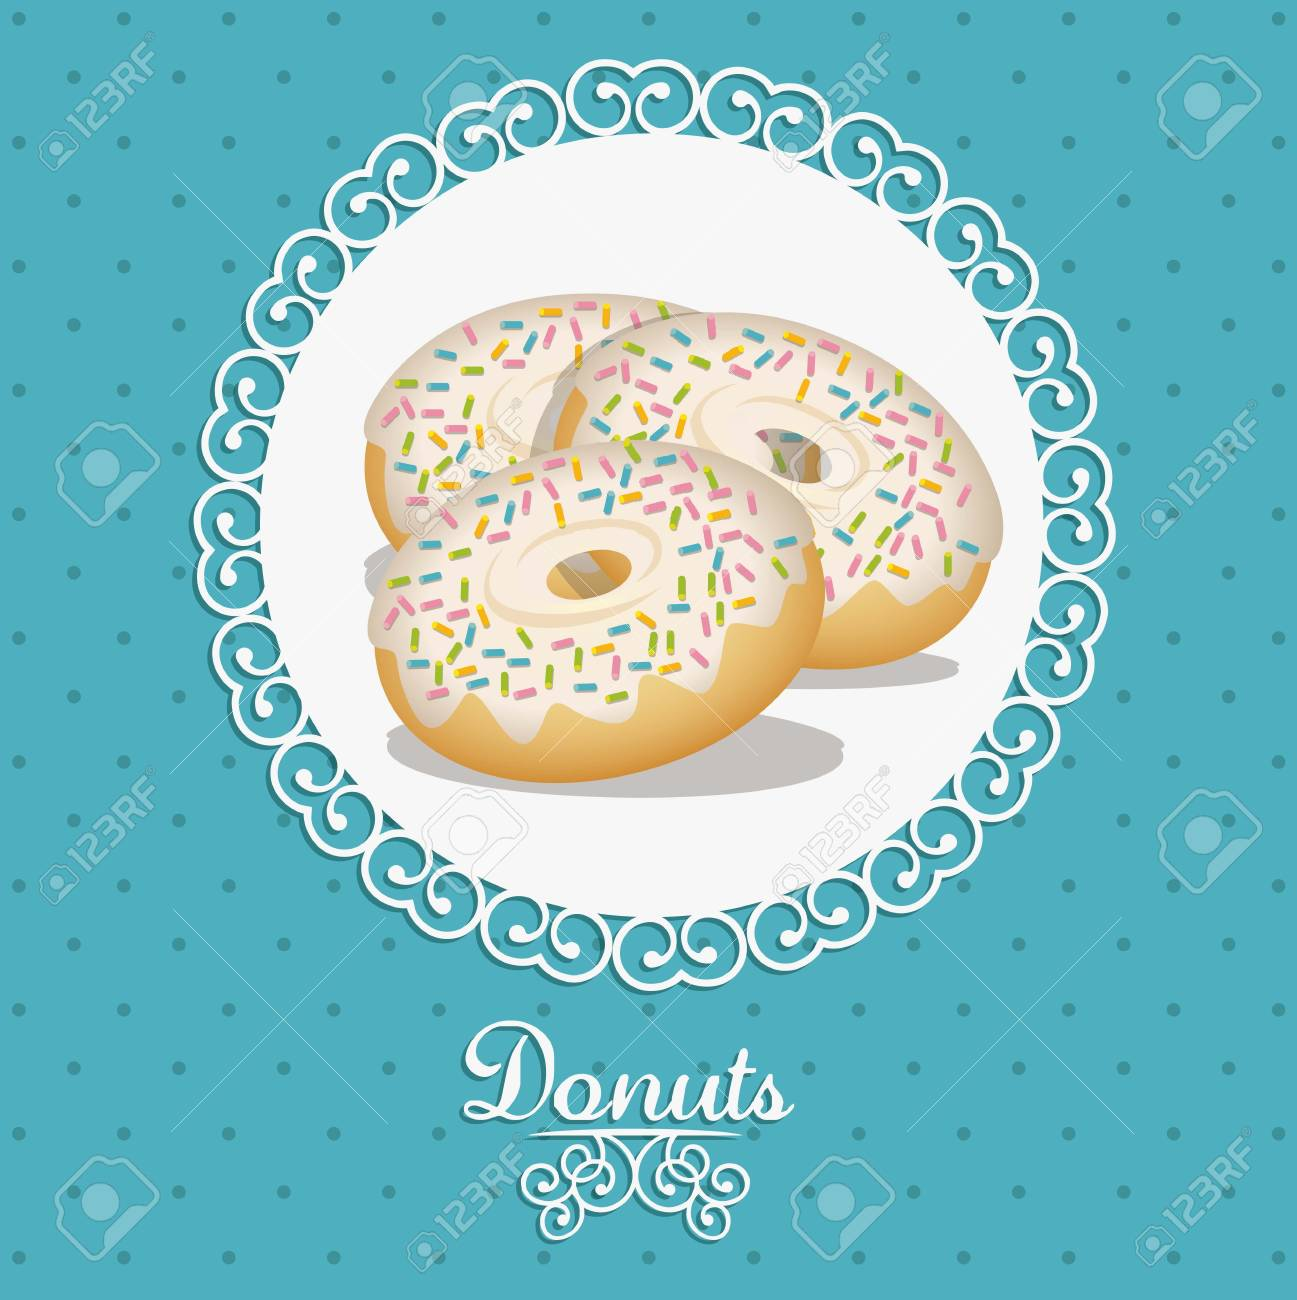 Illustration of donut and food, bakery icon, vector illustration Stock Vector - 17004295